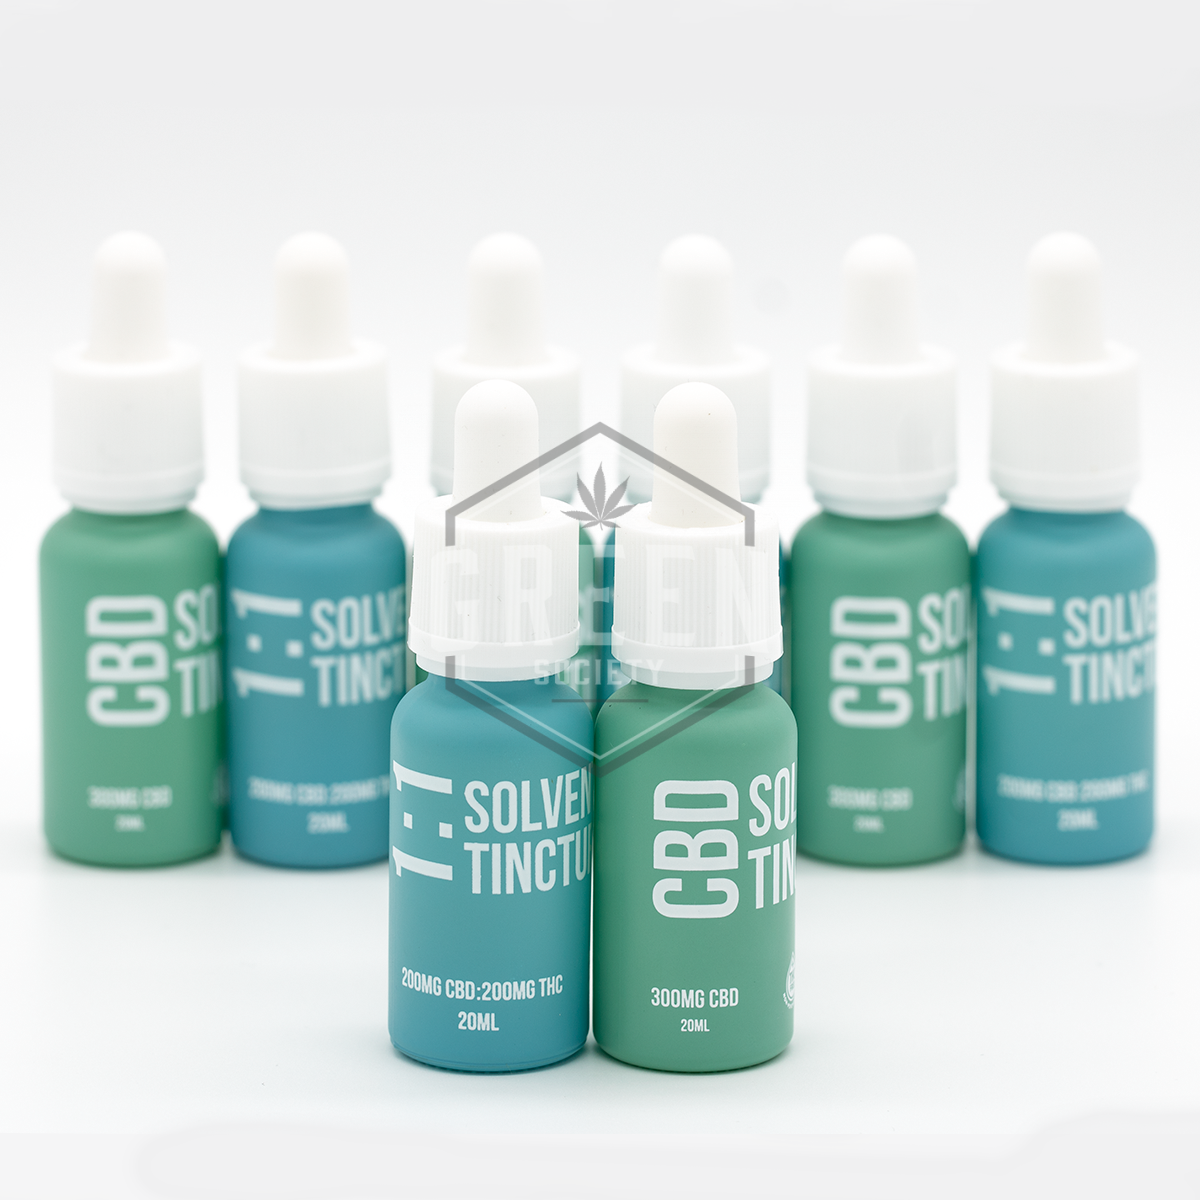 Solvent-Free CBD Tinctures by Miss Envy by Green Society - Image © 2018 Green Society. All Rights Reserved.